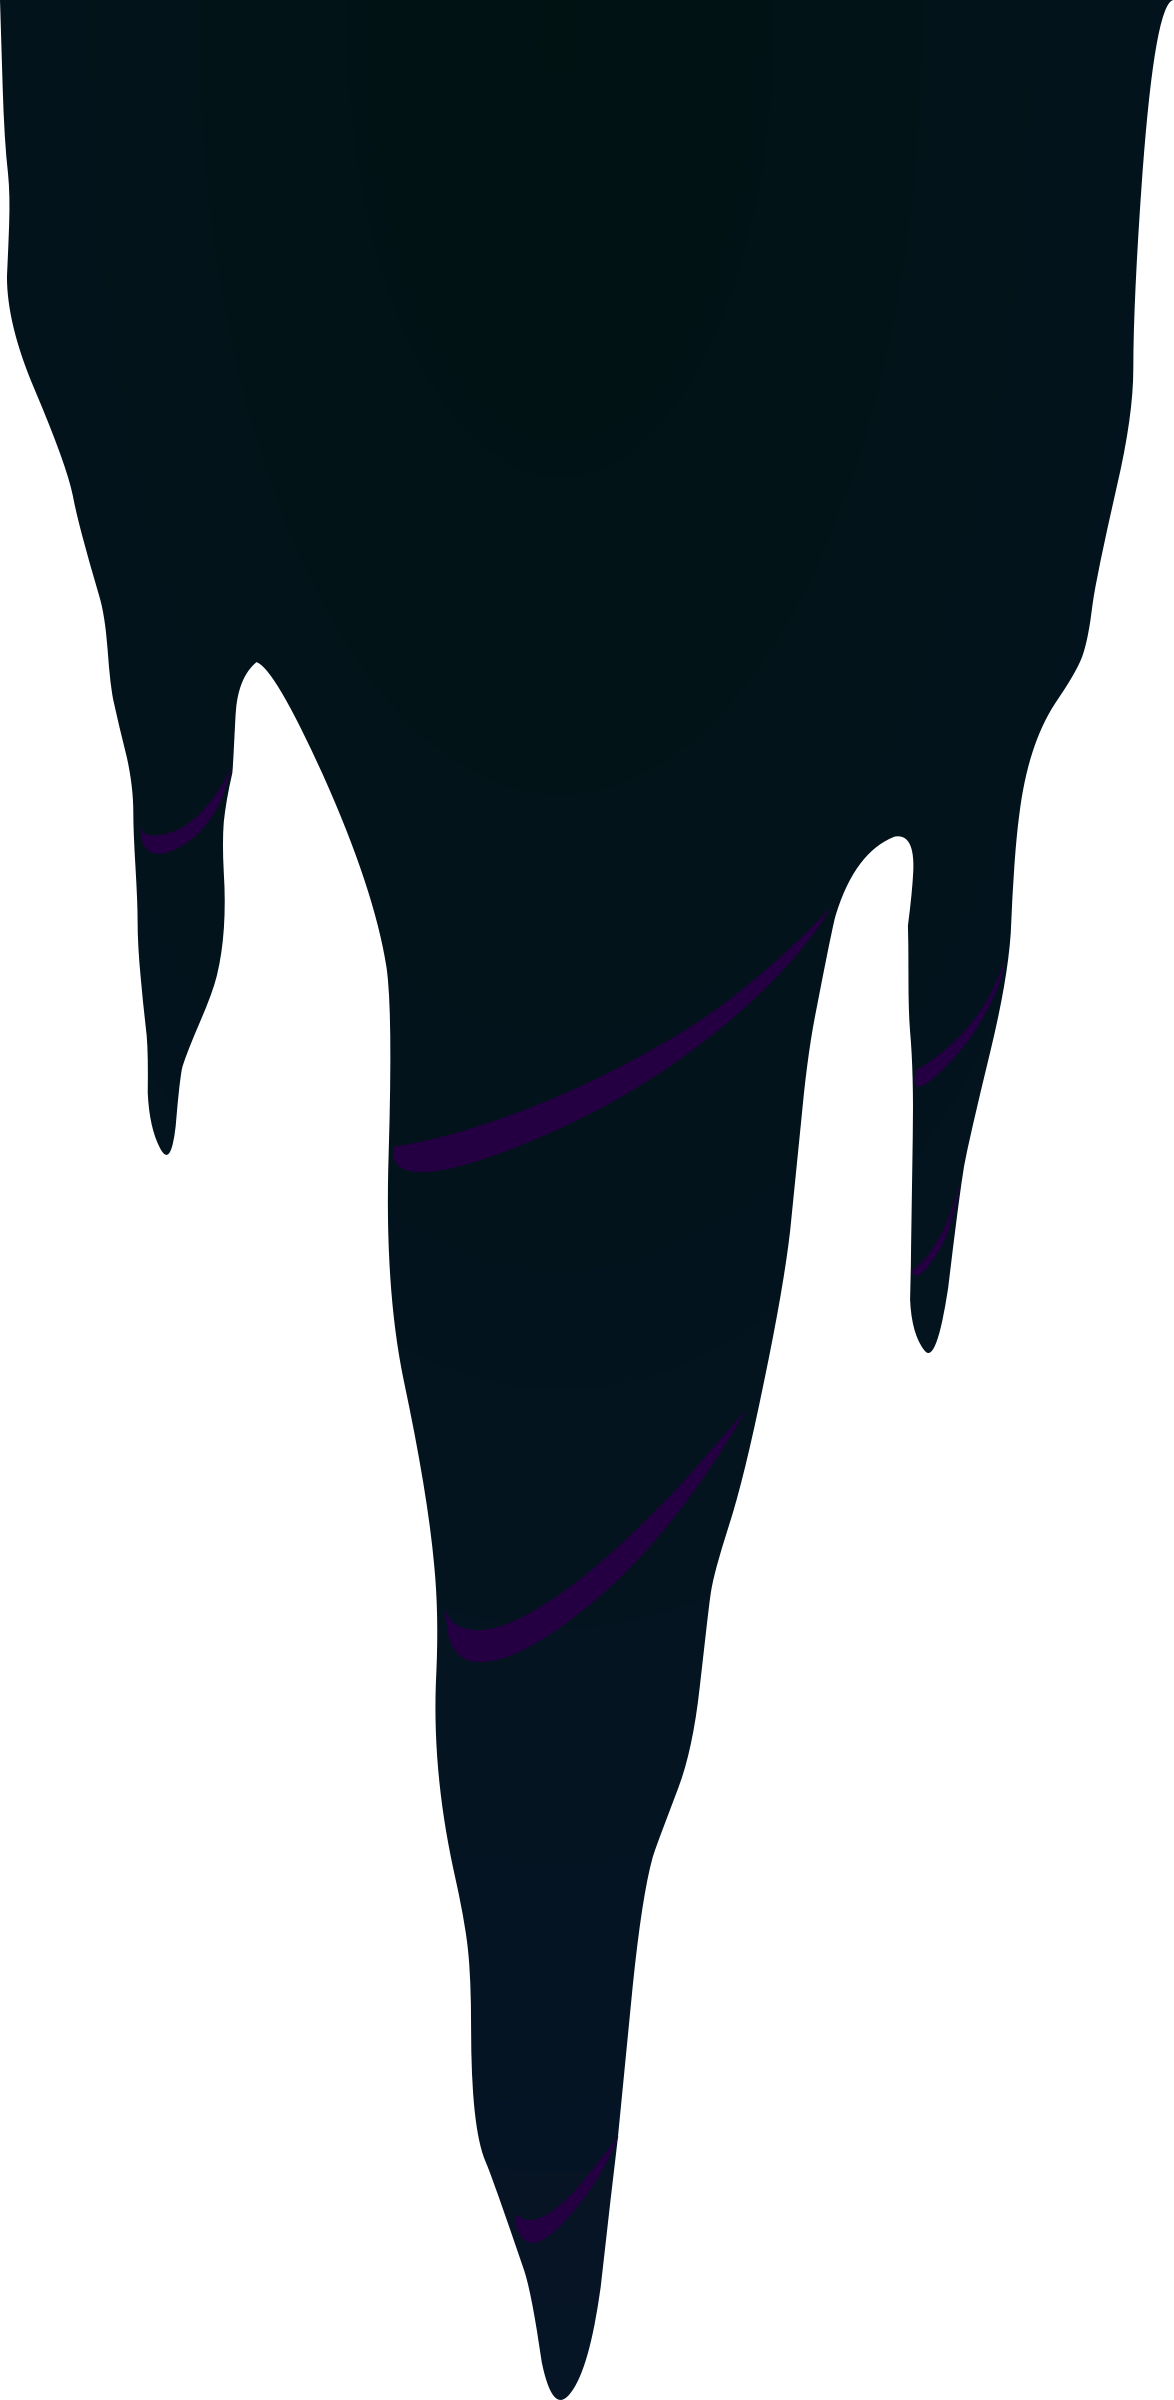 1174x2400 Ilmenskie Cave Stalactite 5 By @glitch, This Glitch Clipart Is